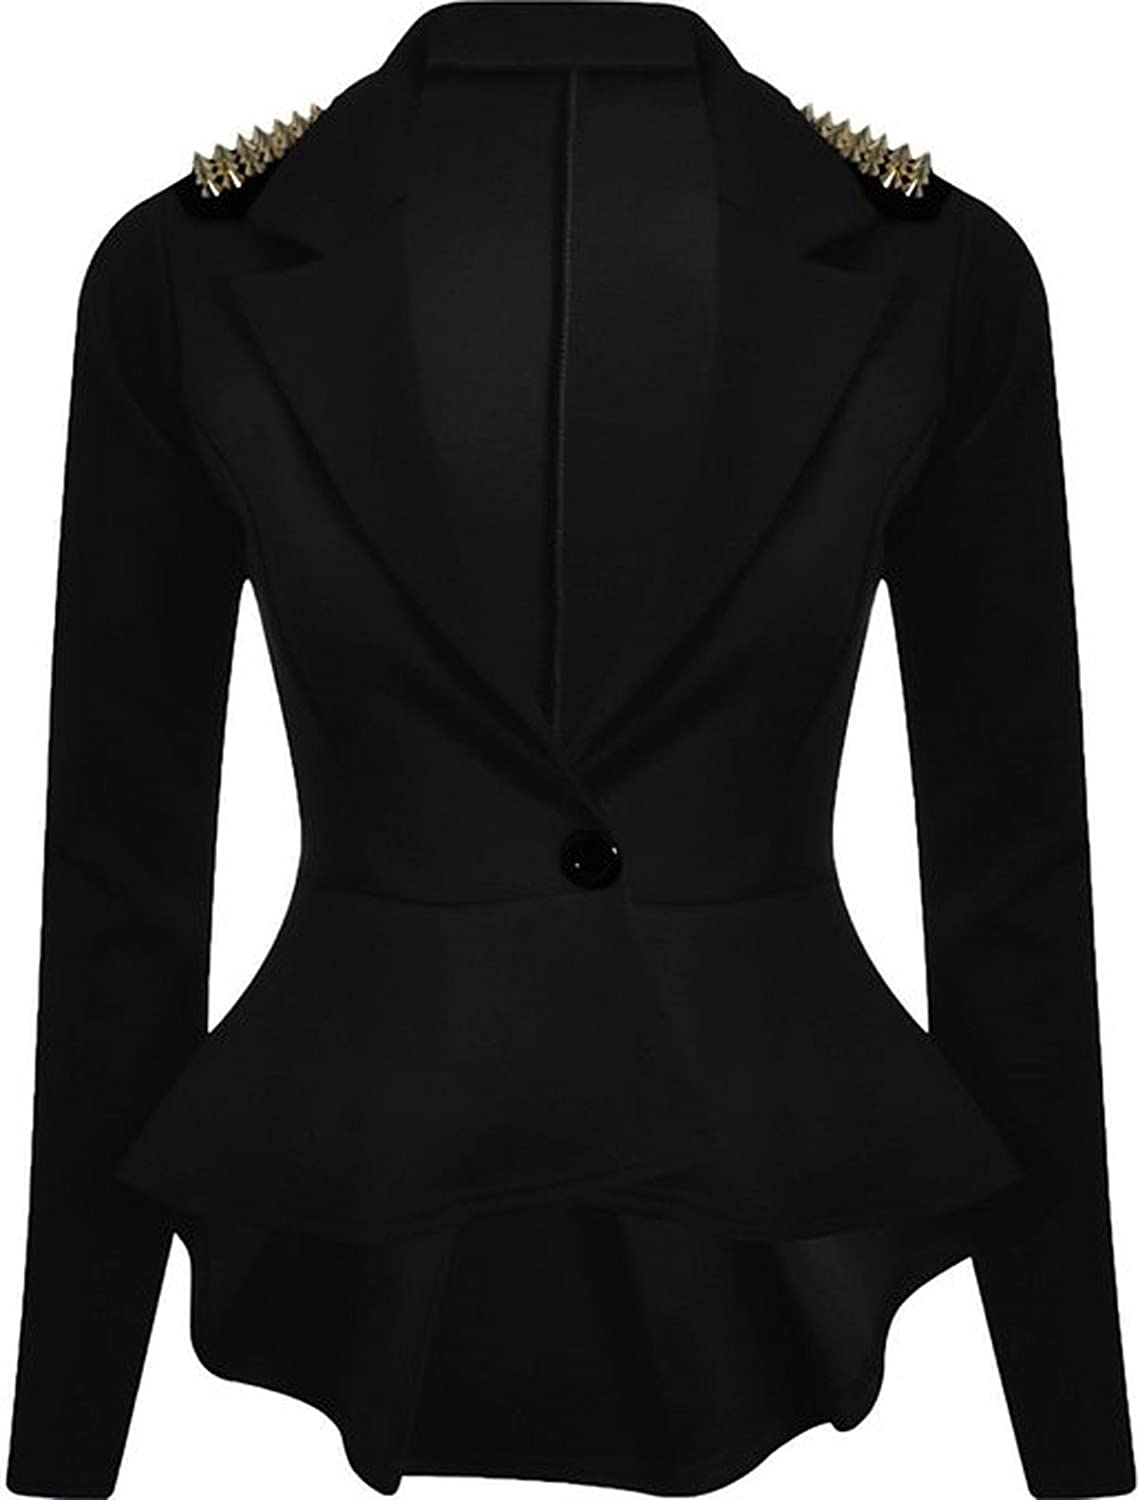 ed338055abe Womens Spikes Studded Crop Peplum Frill Button Blazer Jacket Coat Material   95% Polyester 5% Elastane Approximate Length From Shoulder (Front) - 21